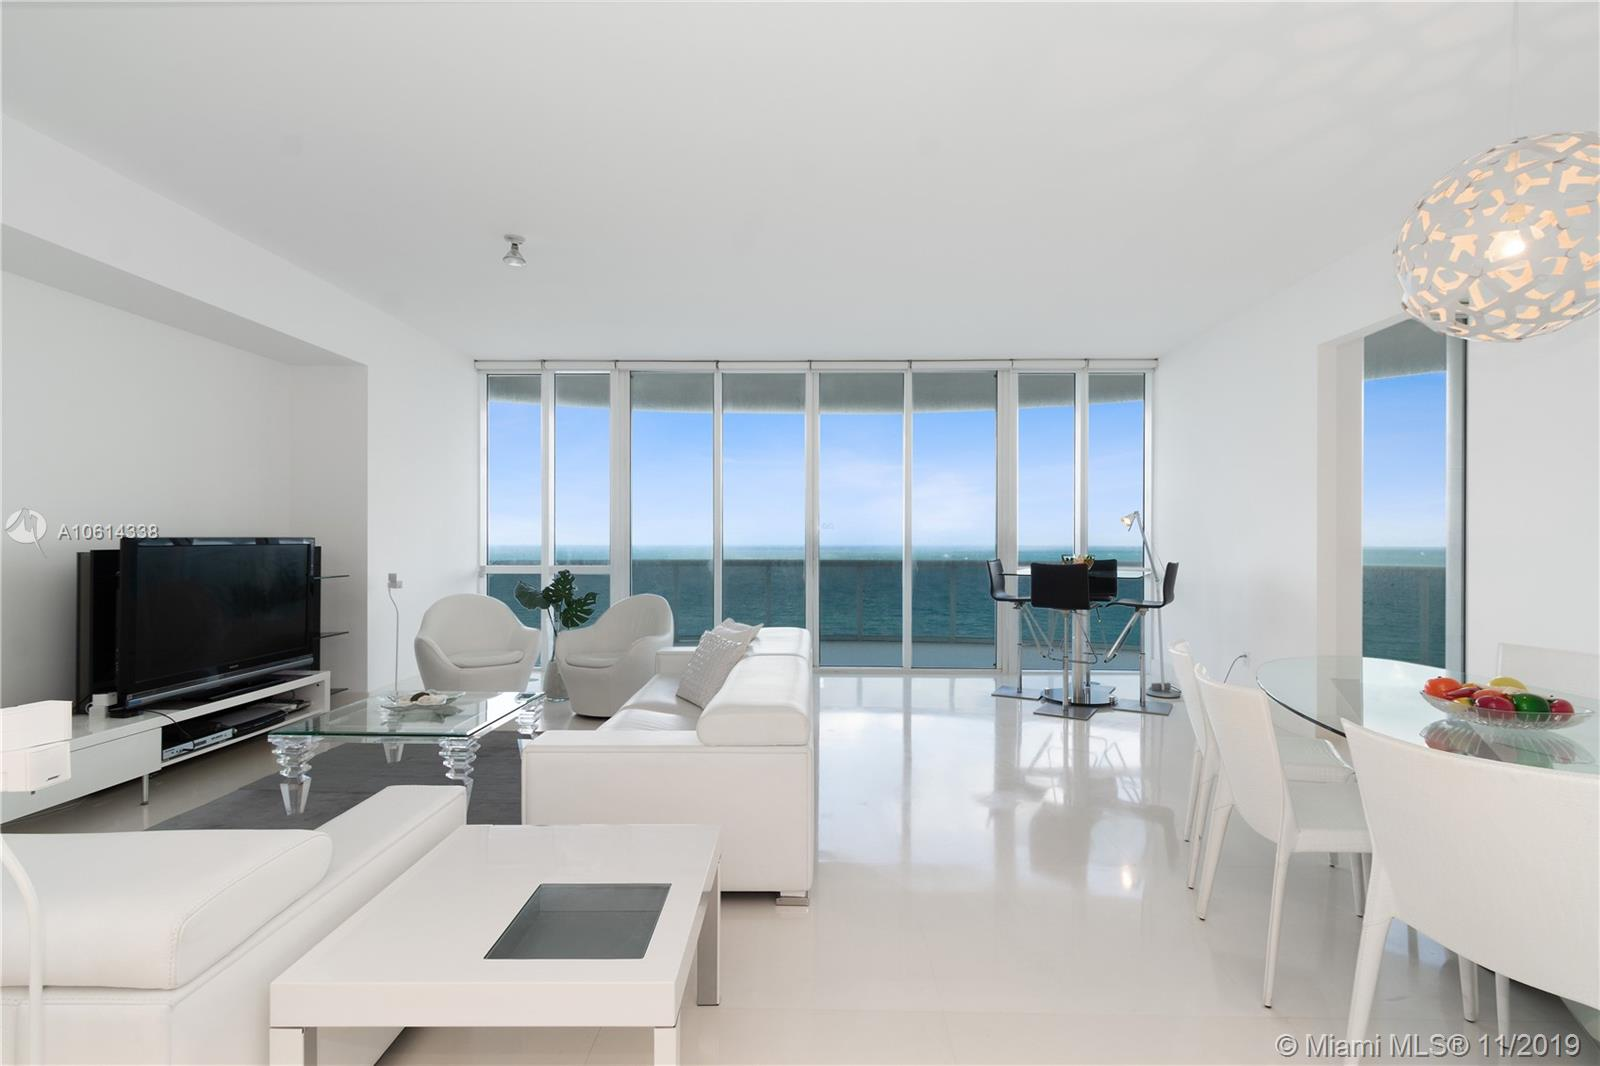 Being Sold Furnished w/ Top of the Line Italian Furniture! Best value in 01 line and largest coveted line in the Luxurious Trump Tower I w/ 5 star Amenities in the heart of Sunny Isles Beach. 11' clear ceilings & huge balcony w/ spectacular unobstructed panoramic views over 48' linear feet of direct oceanfront & Intracoastal views from every room. Magnificent 3b/ 3.5ba residence is finished w/ Crema Marfil marble on floors & walls in bathrooms, modern Open Kitchen w/ floor to ceiling glass & terrace access, Sub Zero fridge, dual temperature wine cooler. 2 parking spots in the best exclusive area. Amenities include 4pools, spa, fitness yoga classes offered w/ licensed instructors, business center, beach & room service, gourmet beachfront rest's. Across from Intracoastal Park